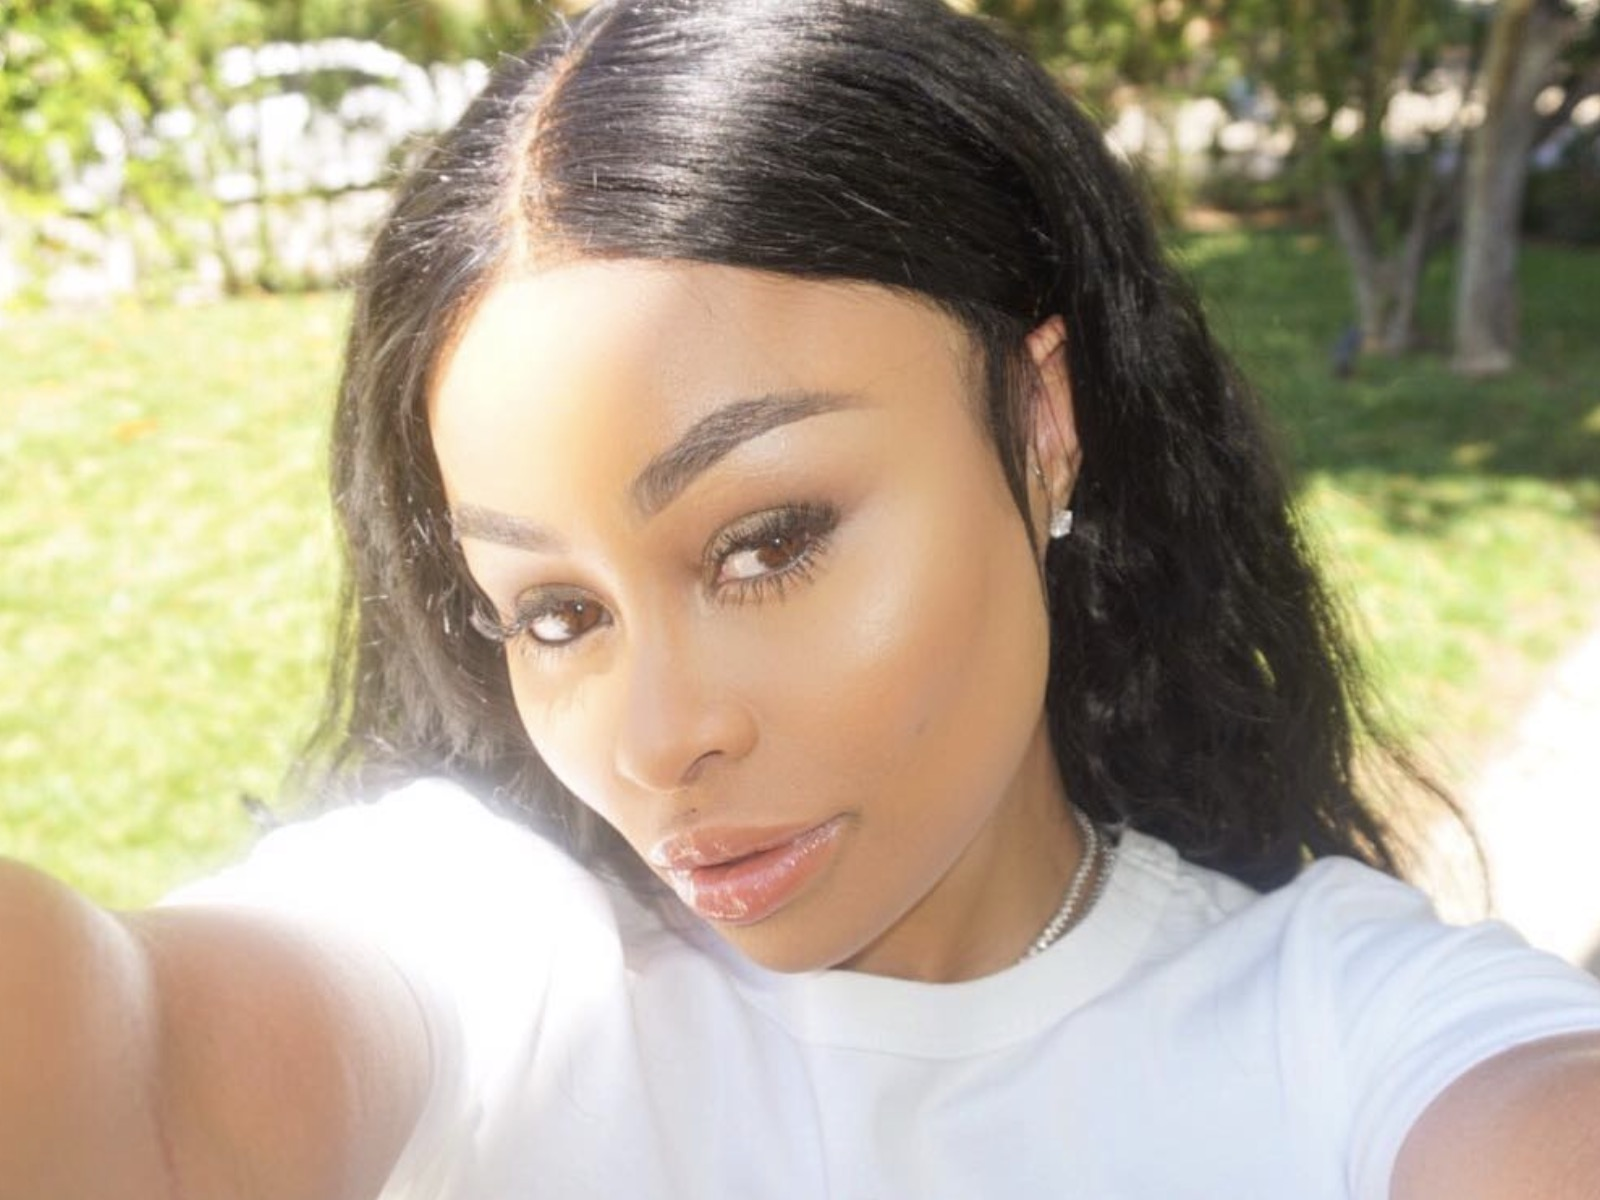 blac-chyna-is-grateful-to-everyone-who-wished-her-well-for-her-birthday-fans-tell-her-to-rise-above-hate